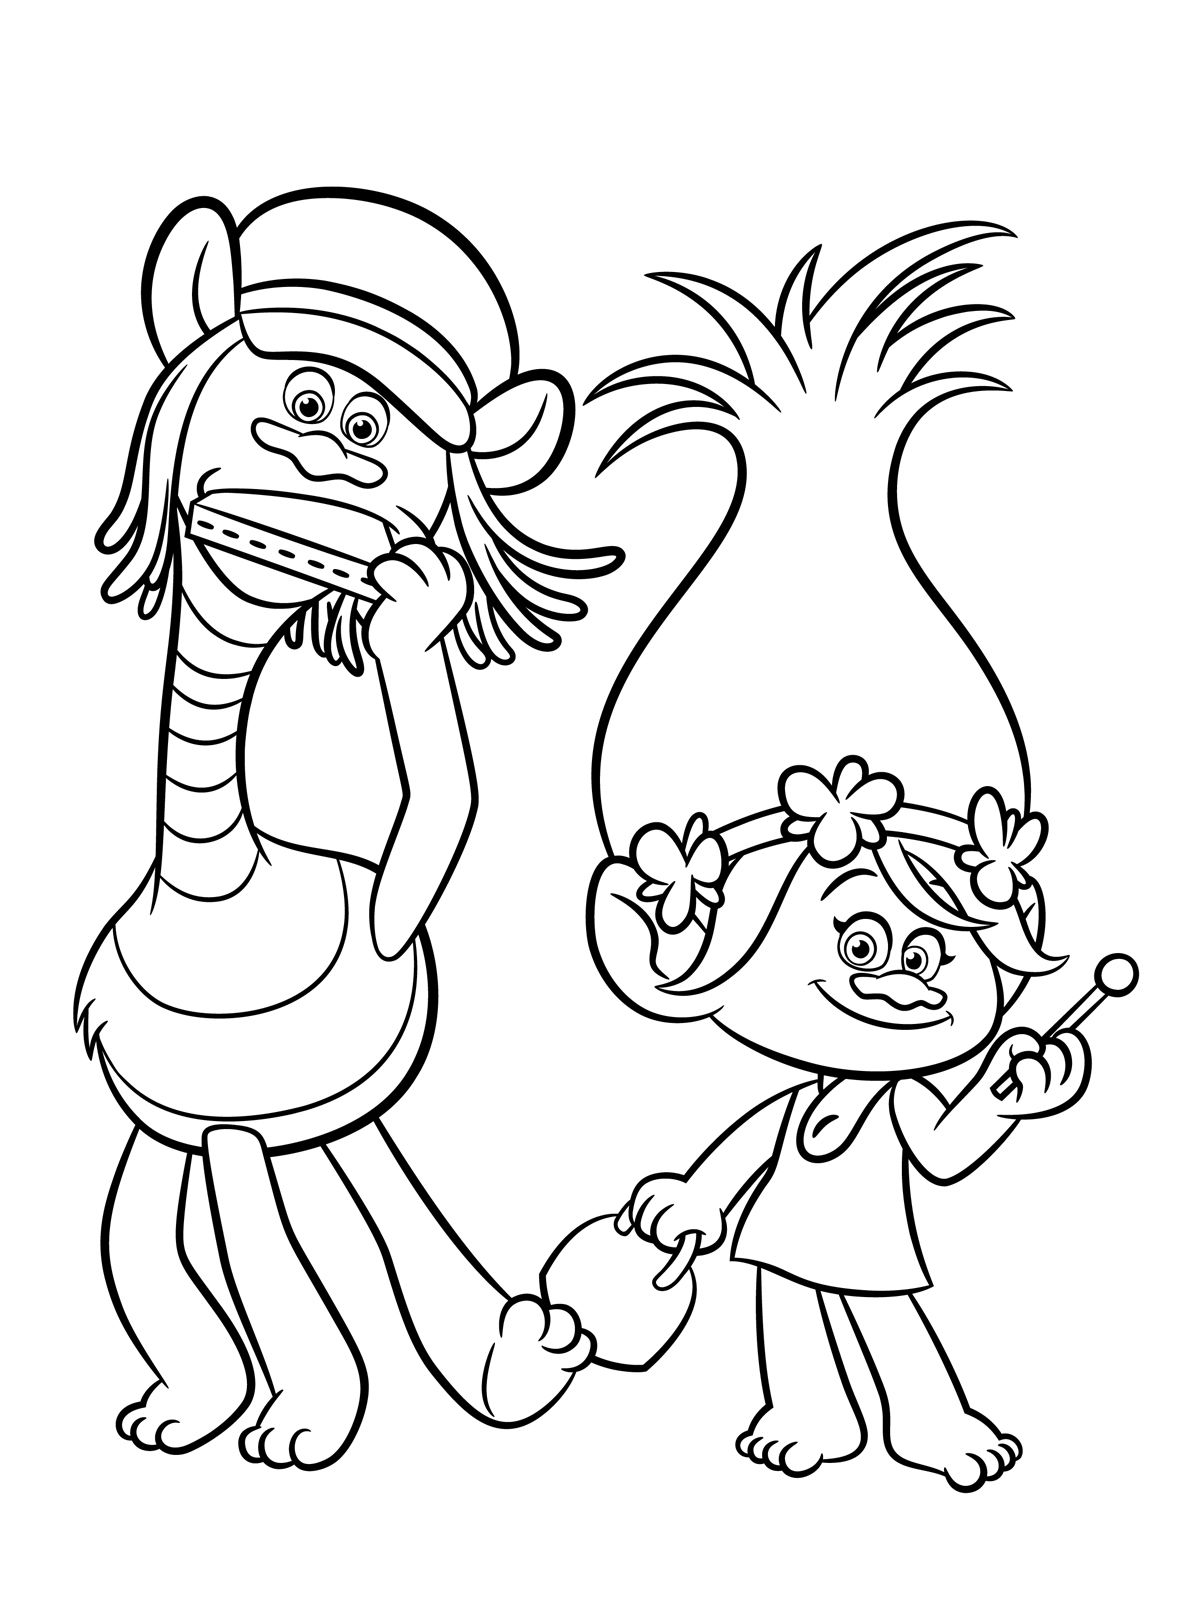 coloring page images disney coloring pages best coloring pages for kids images page coloring